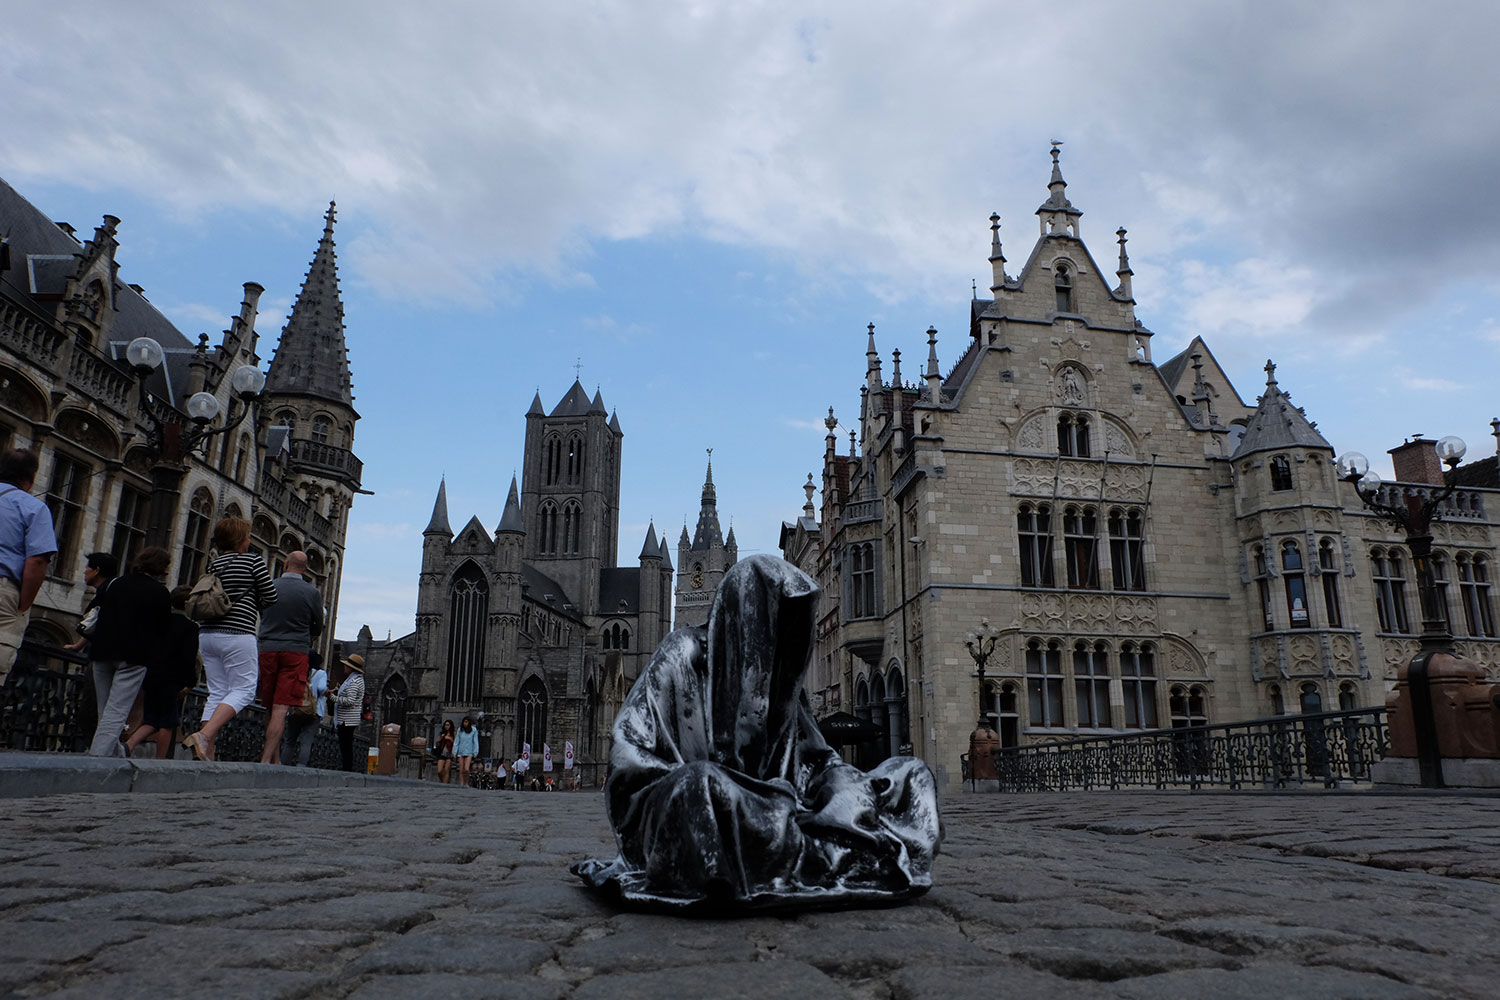 guardians-of-time-manfred-kili-kielnhofer-gent-belgium-contemporary-art-arts-design-sculpture-5287